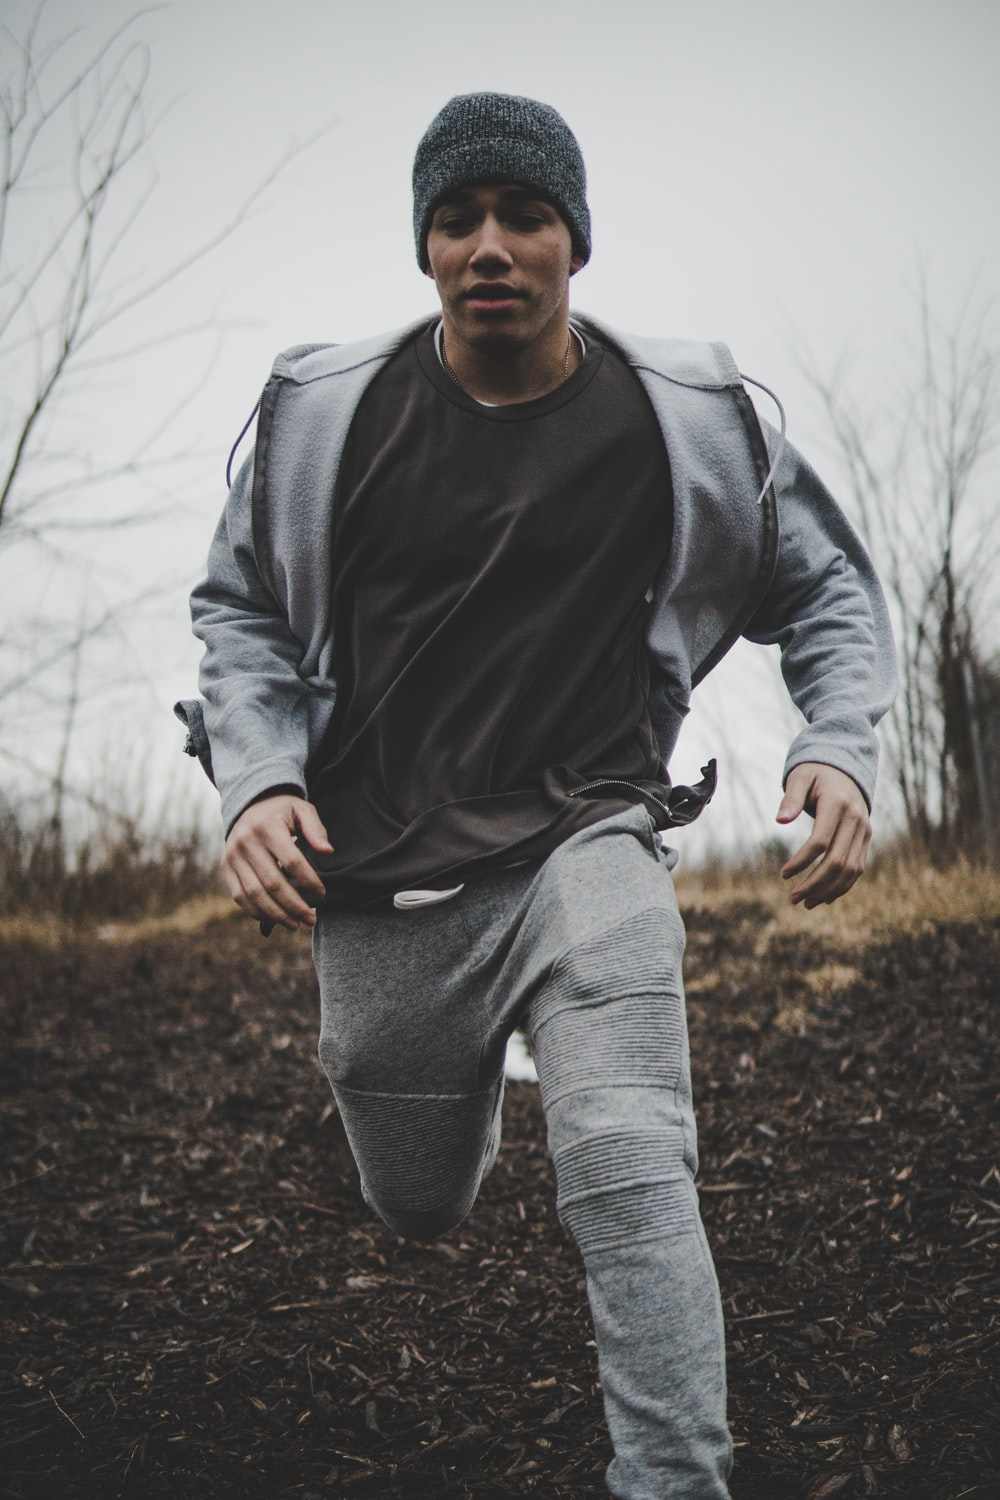 man wearing black shirt and gray jacket with pants while running into plain field